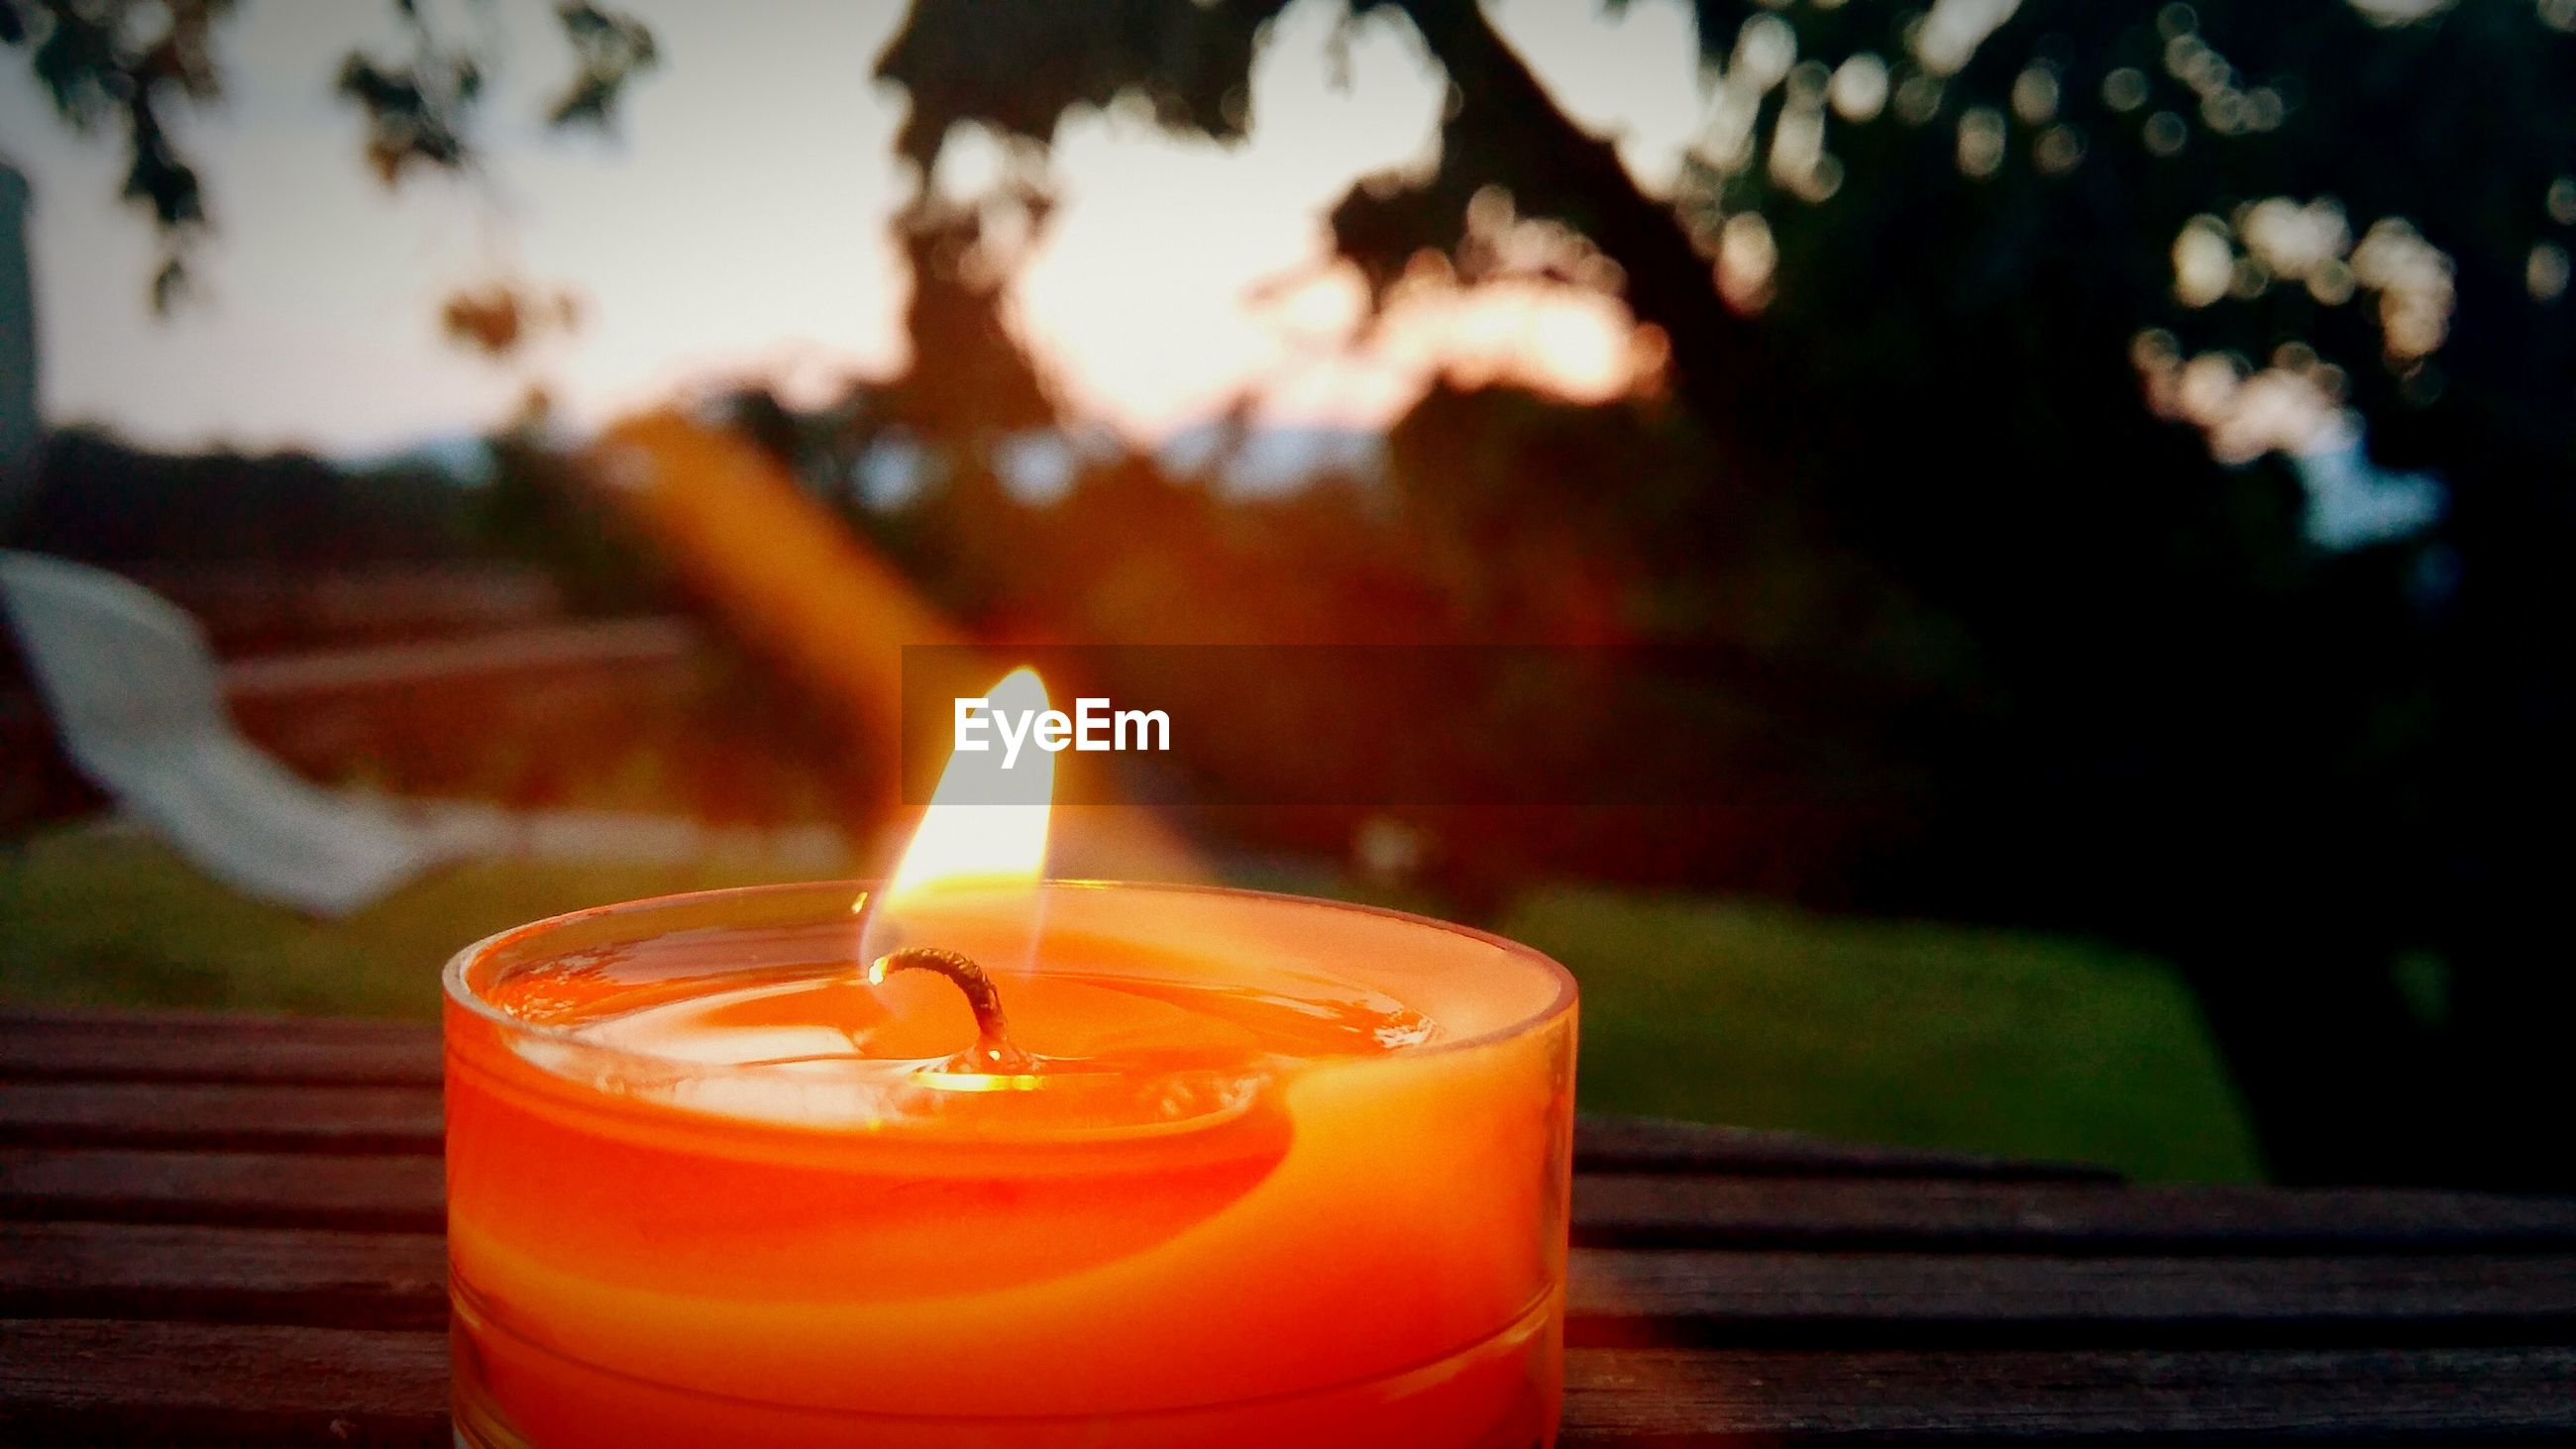 burning, flame, candle, heat - temperature, fire - natural phenomenon, glowing, illuminated, lit, close-up, focus on foreground, fire, candlelight, indoors, drink, glass - material, tea light, orange color, selective focus, lighting equipment, light - natural phenomenon